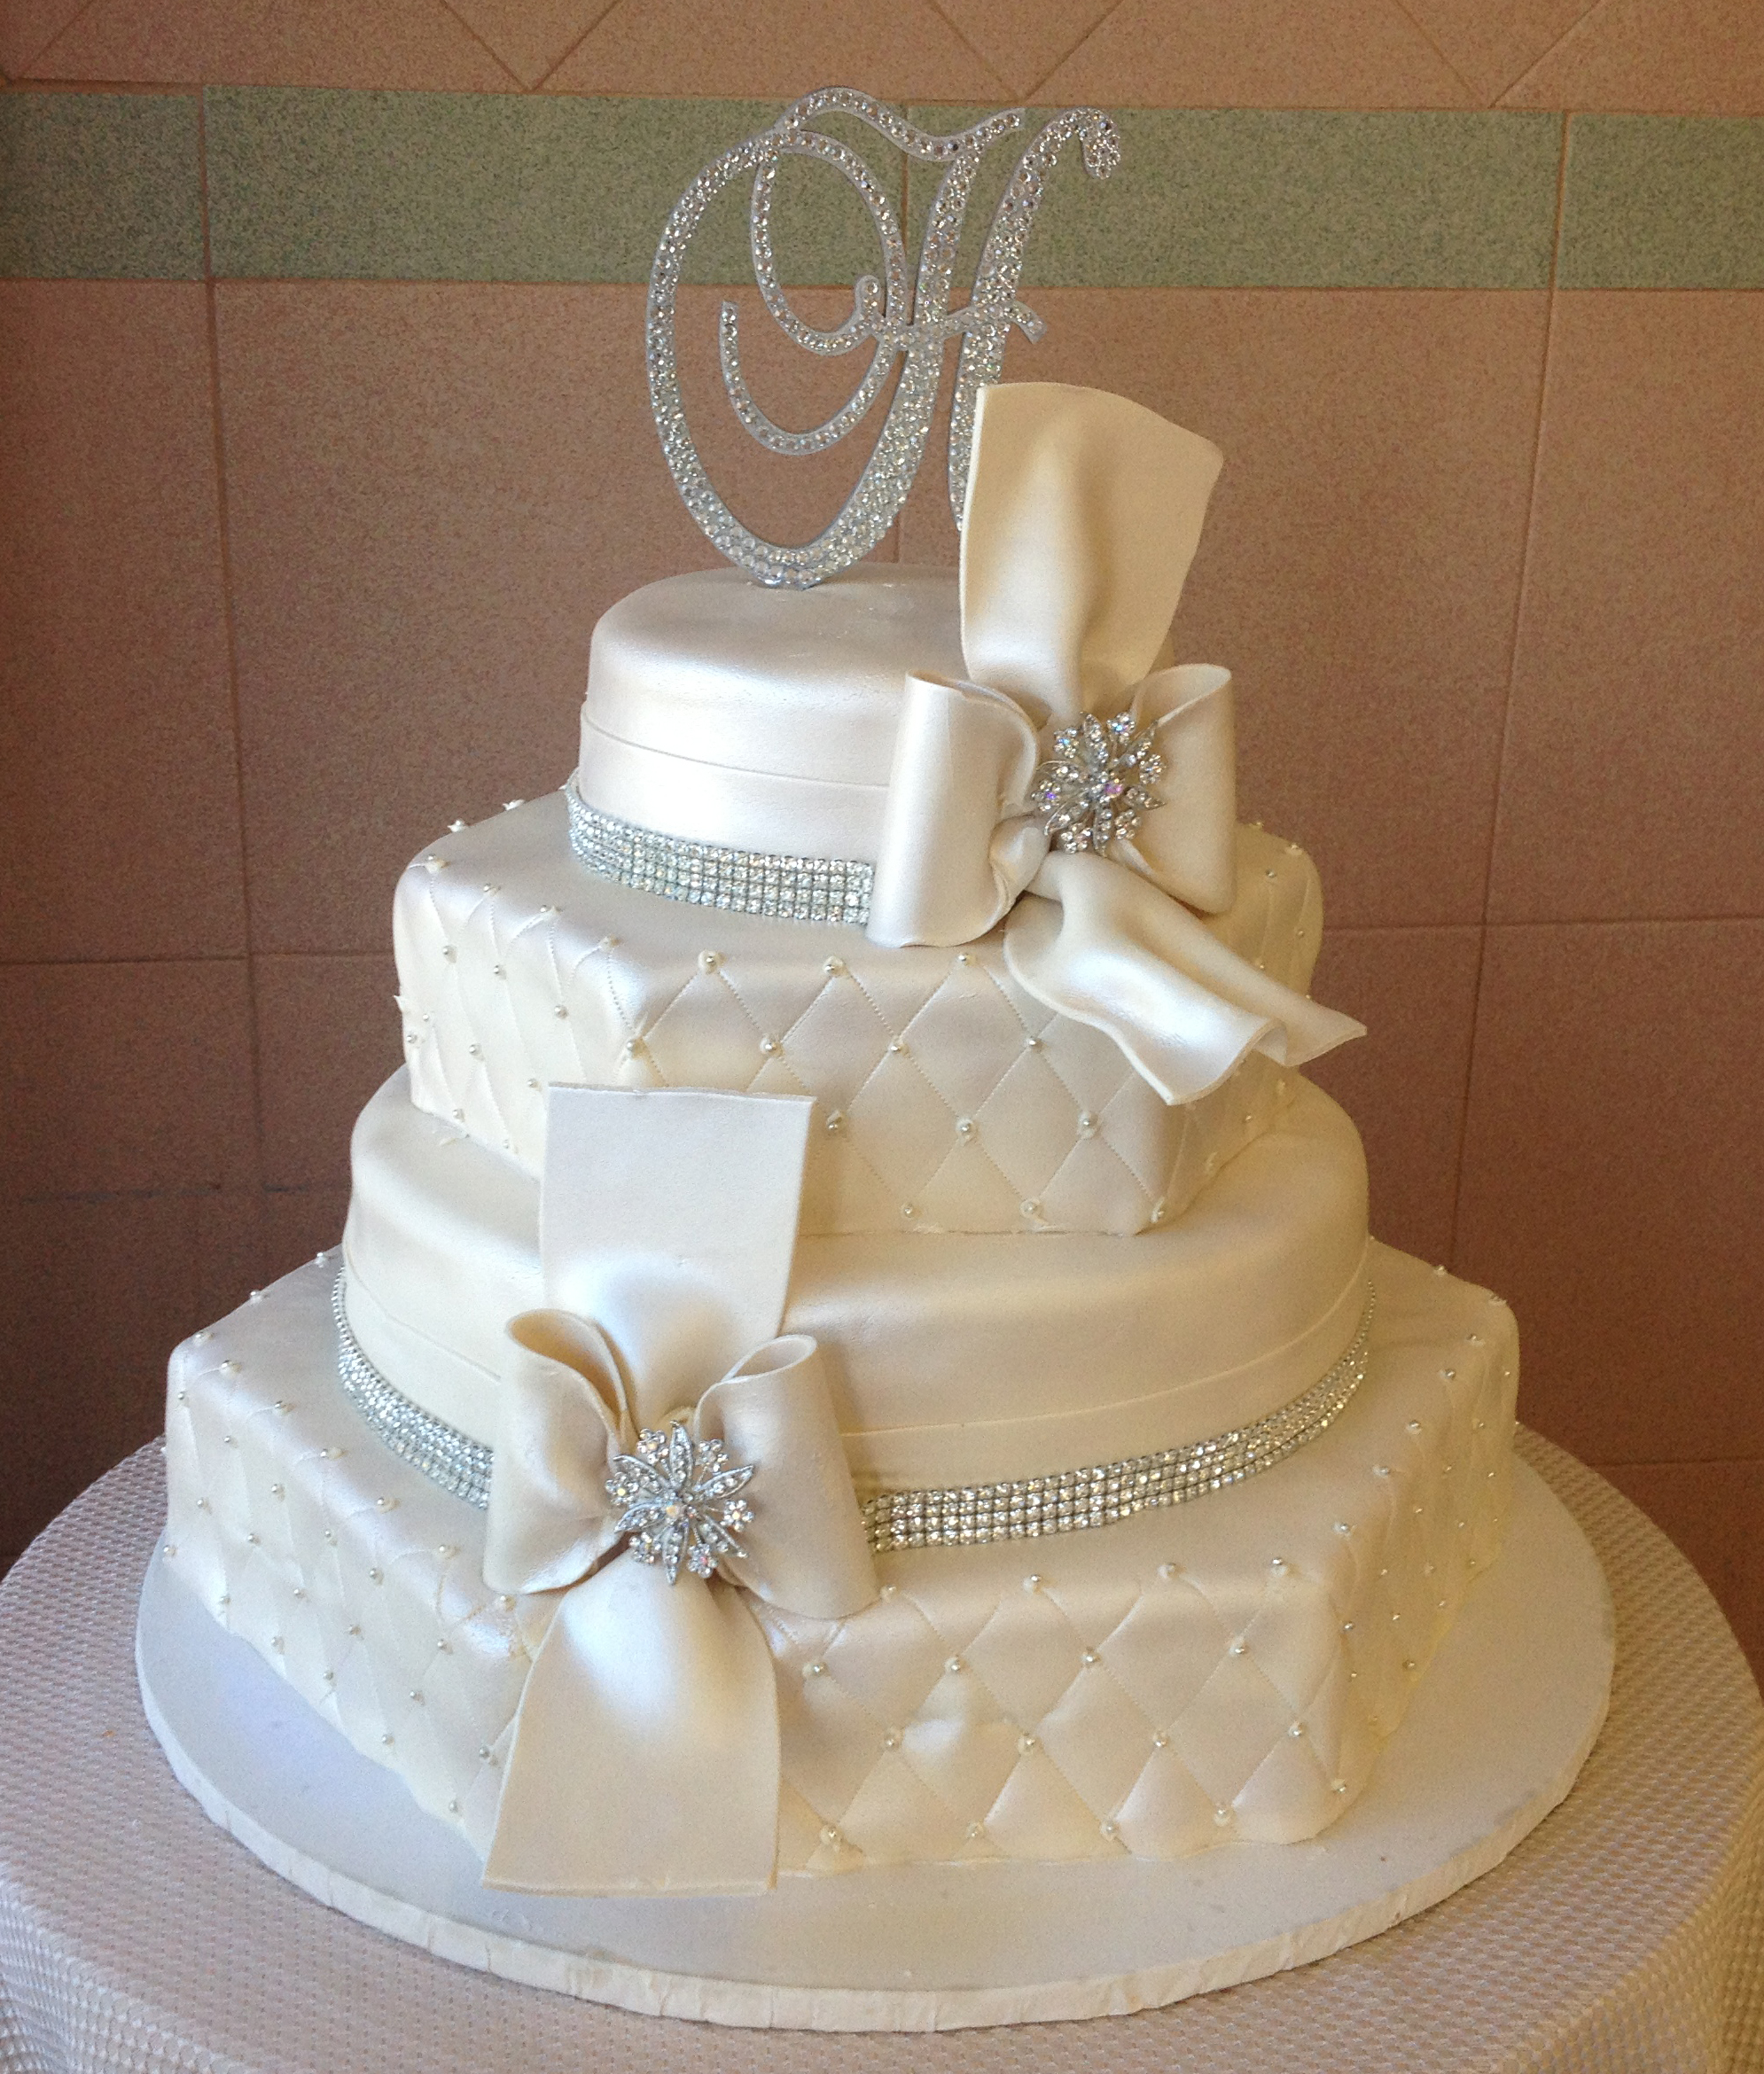 62 Ivory Rolled Fondant, Quilted, Hexagon, Ribbon, Bow, Crystals, Pearlized